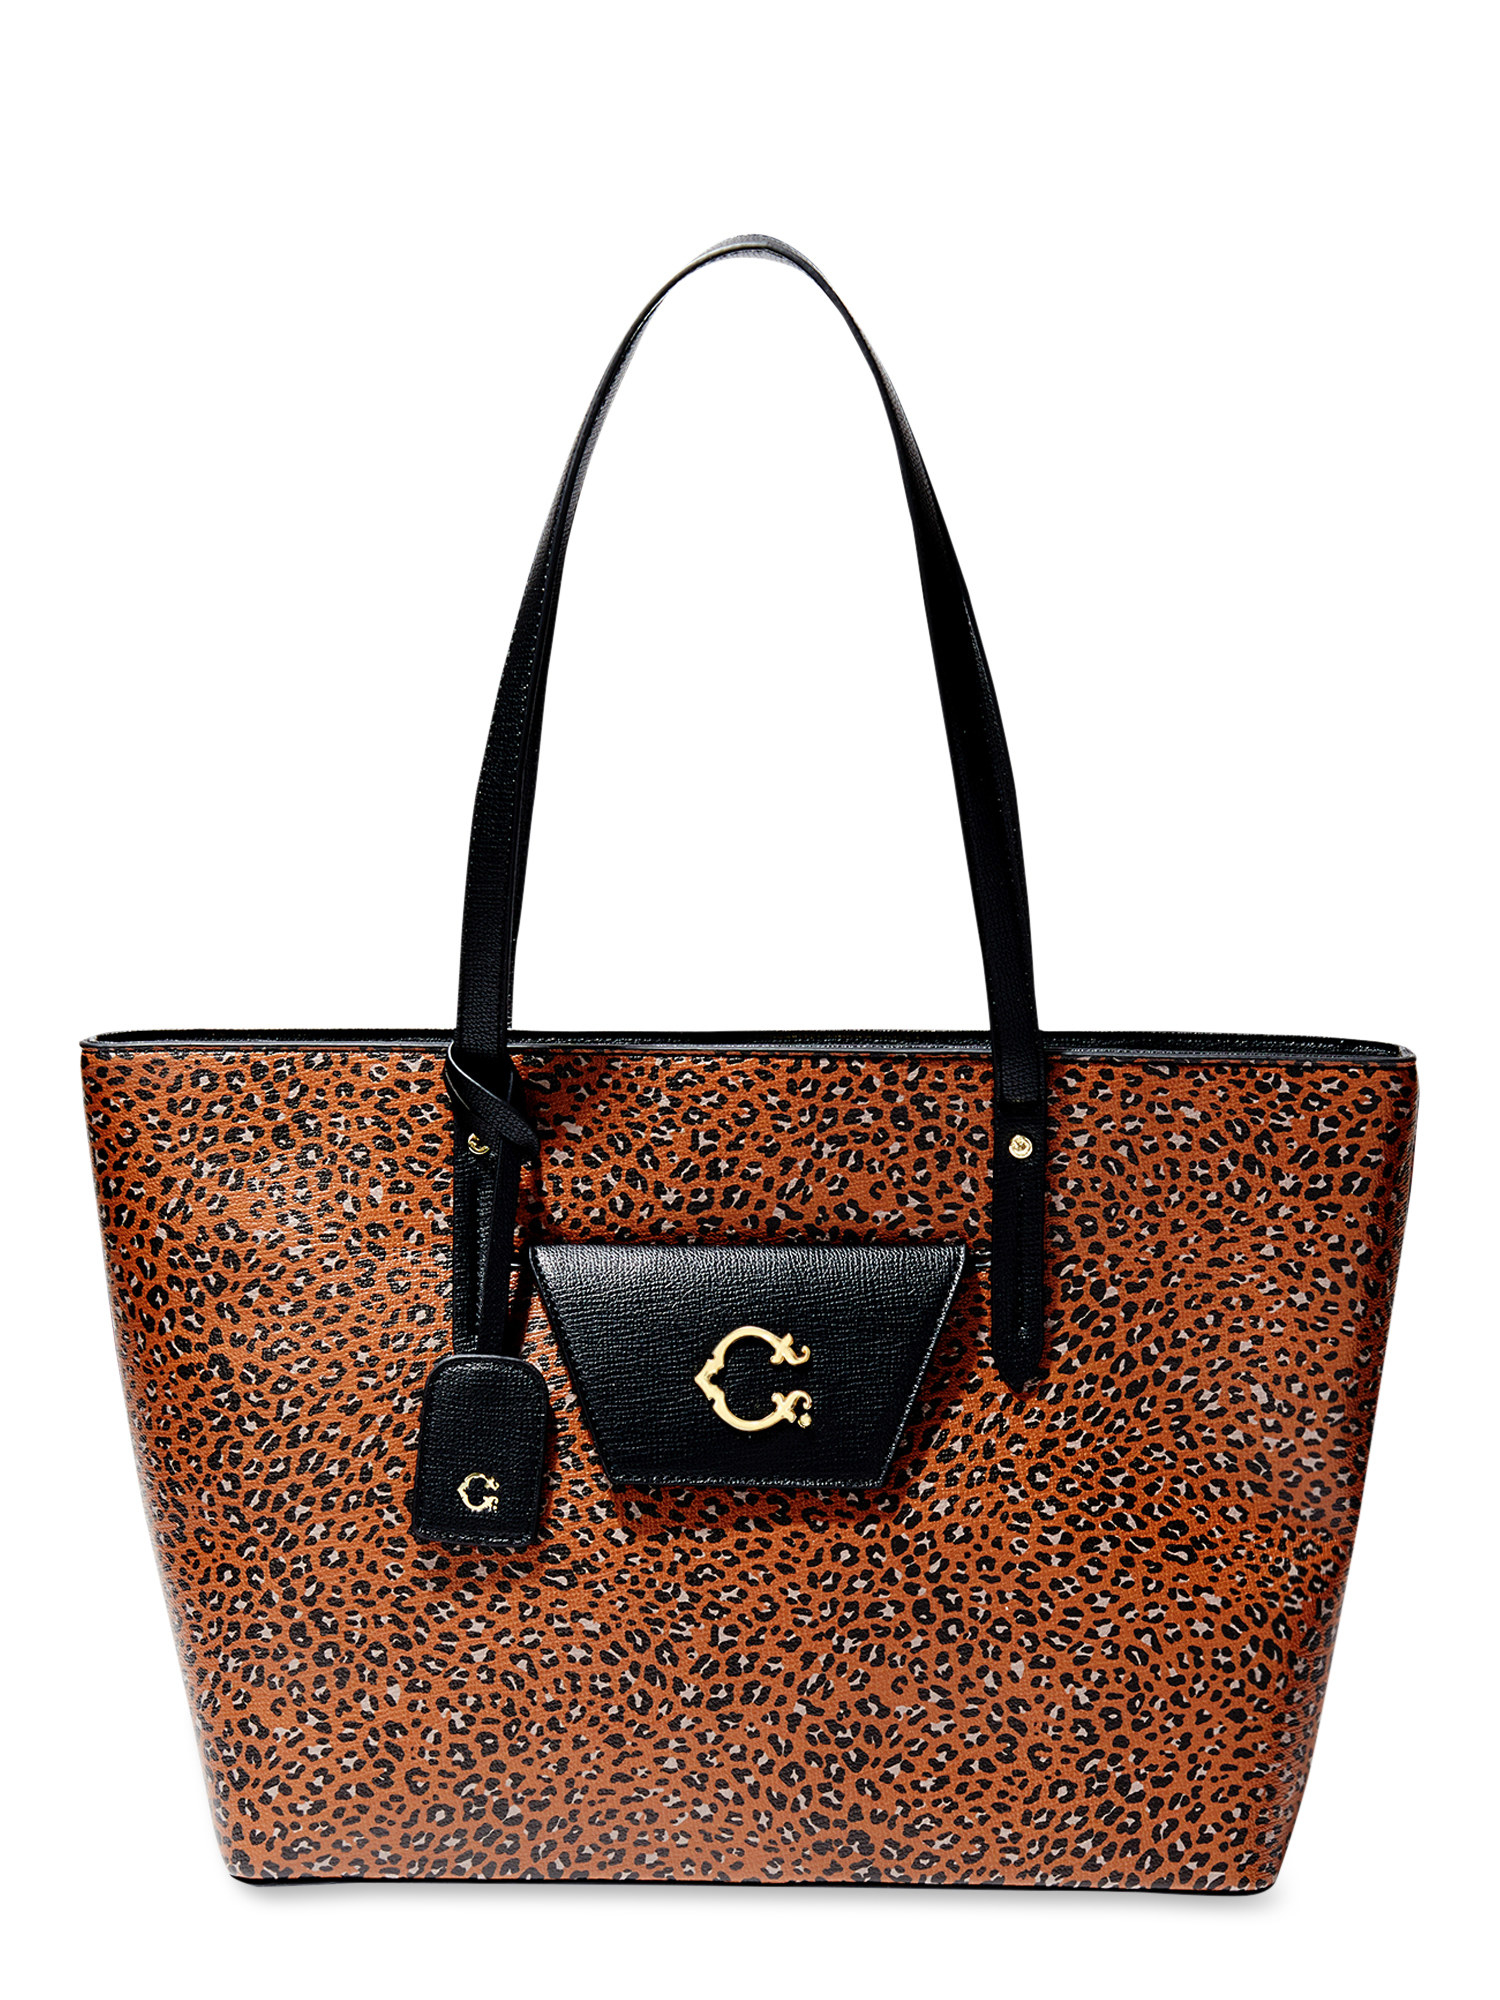 The cheetah print bag